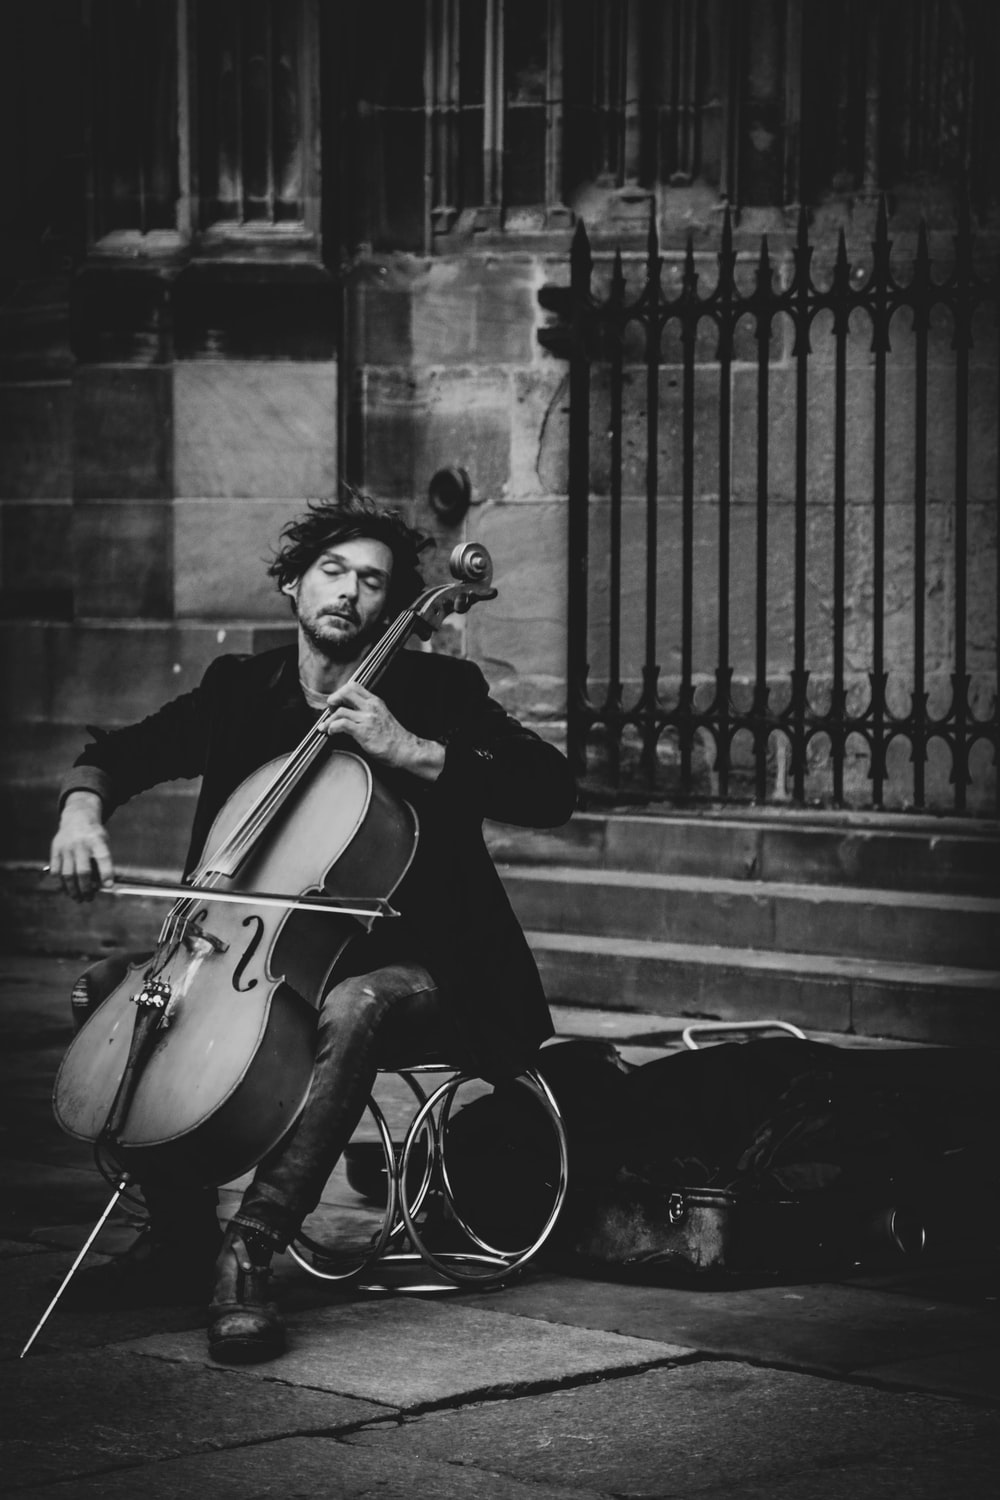 man playing violin on street in grayscale photography